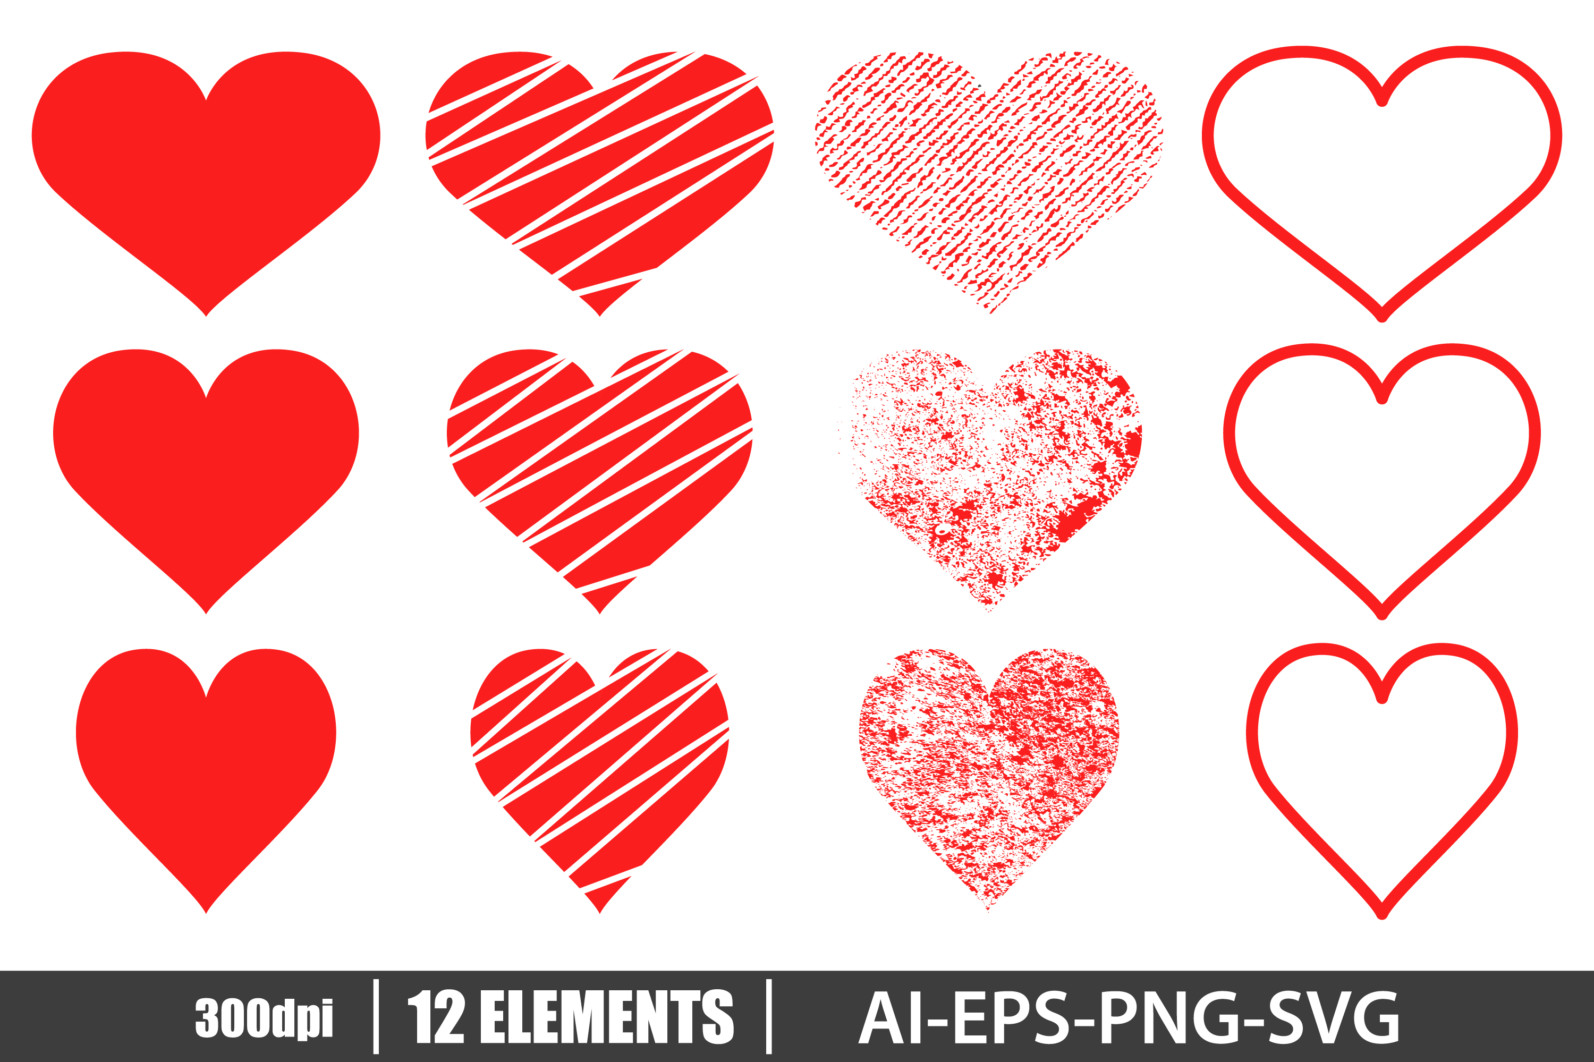 Red heart set clipart vector design illustration. Vector Clipart Print - HEART 2 scaled -